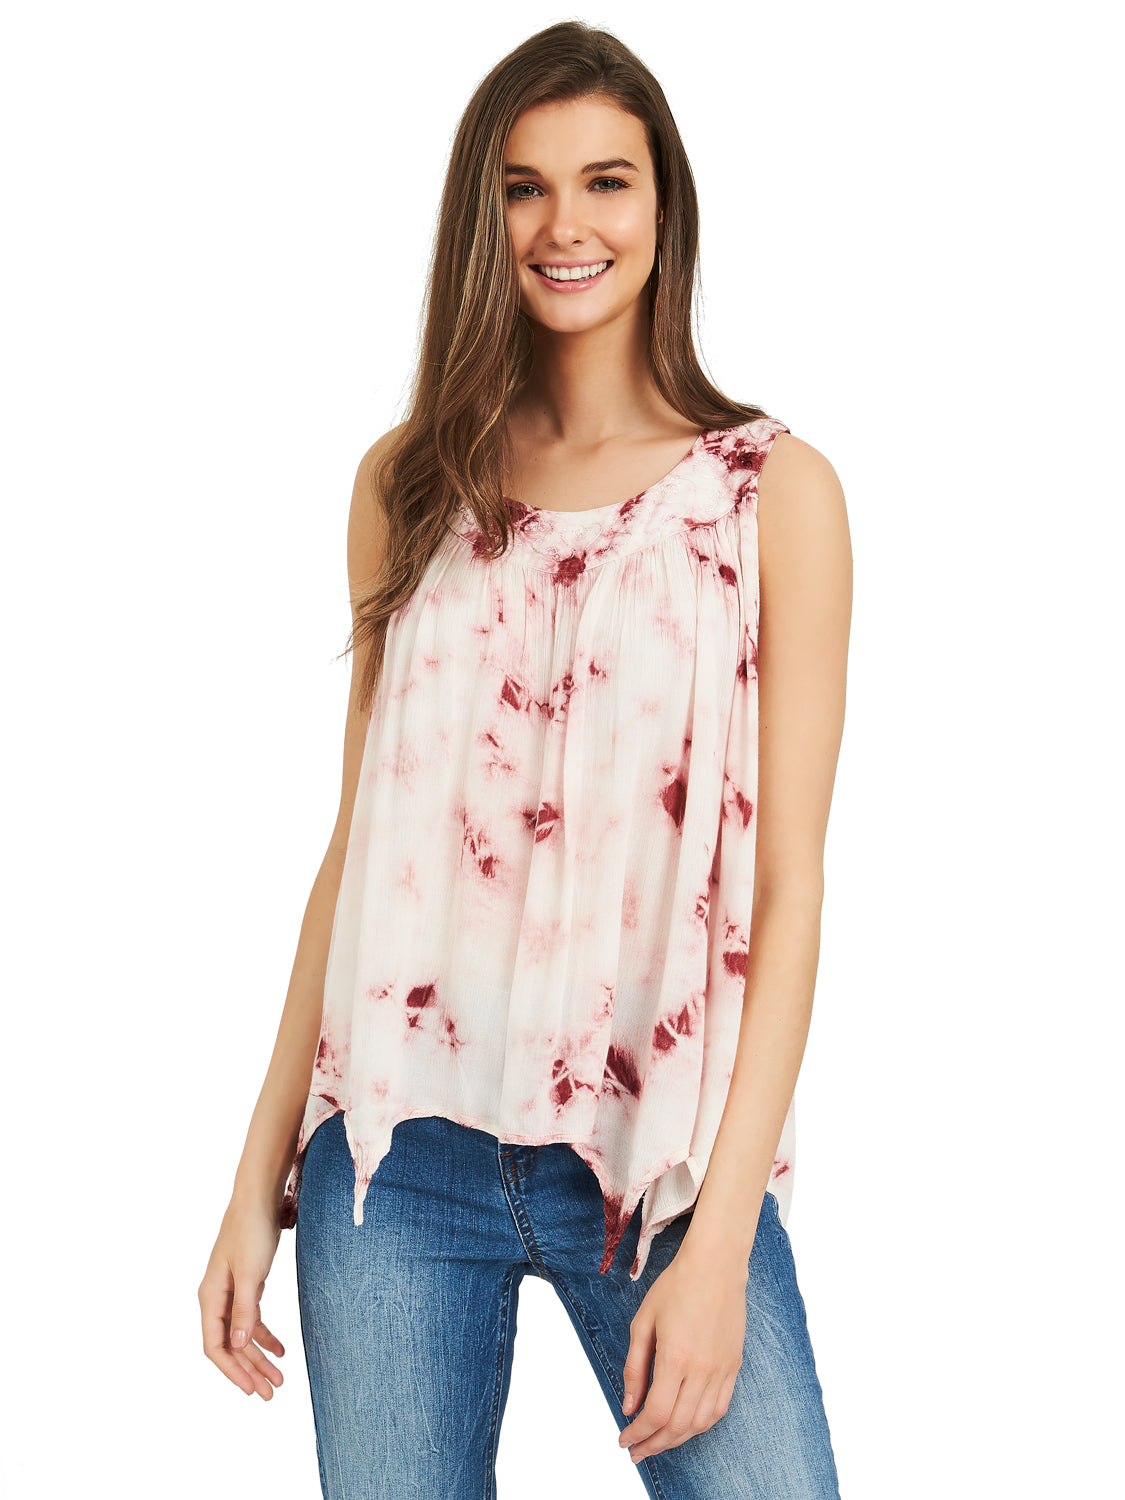 834e4188367 ... Tie-Dye Sharkbite Hem Top